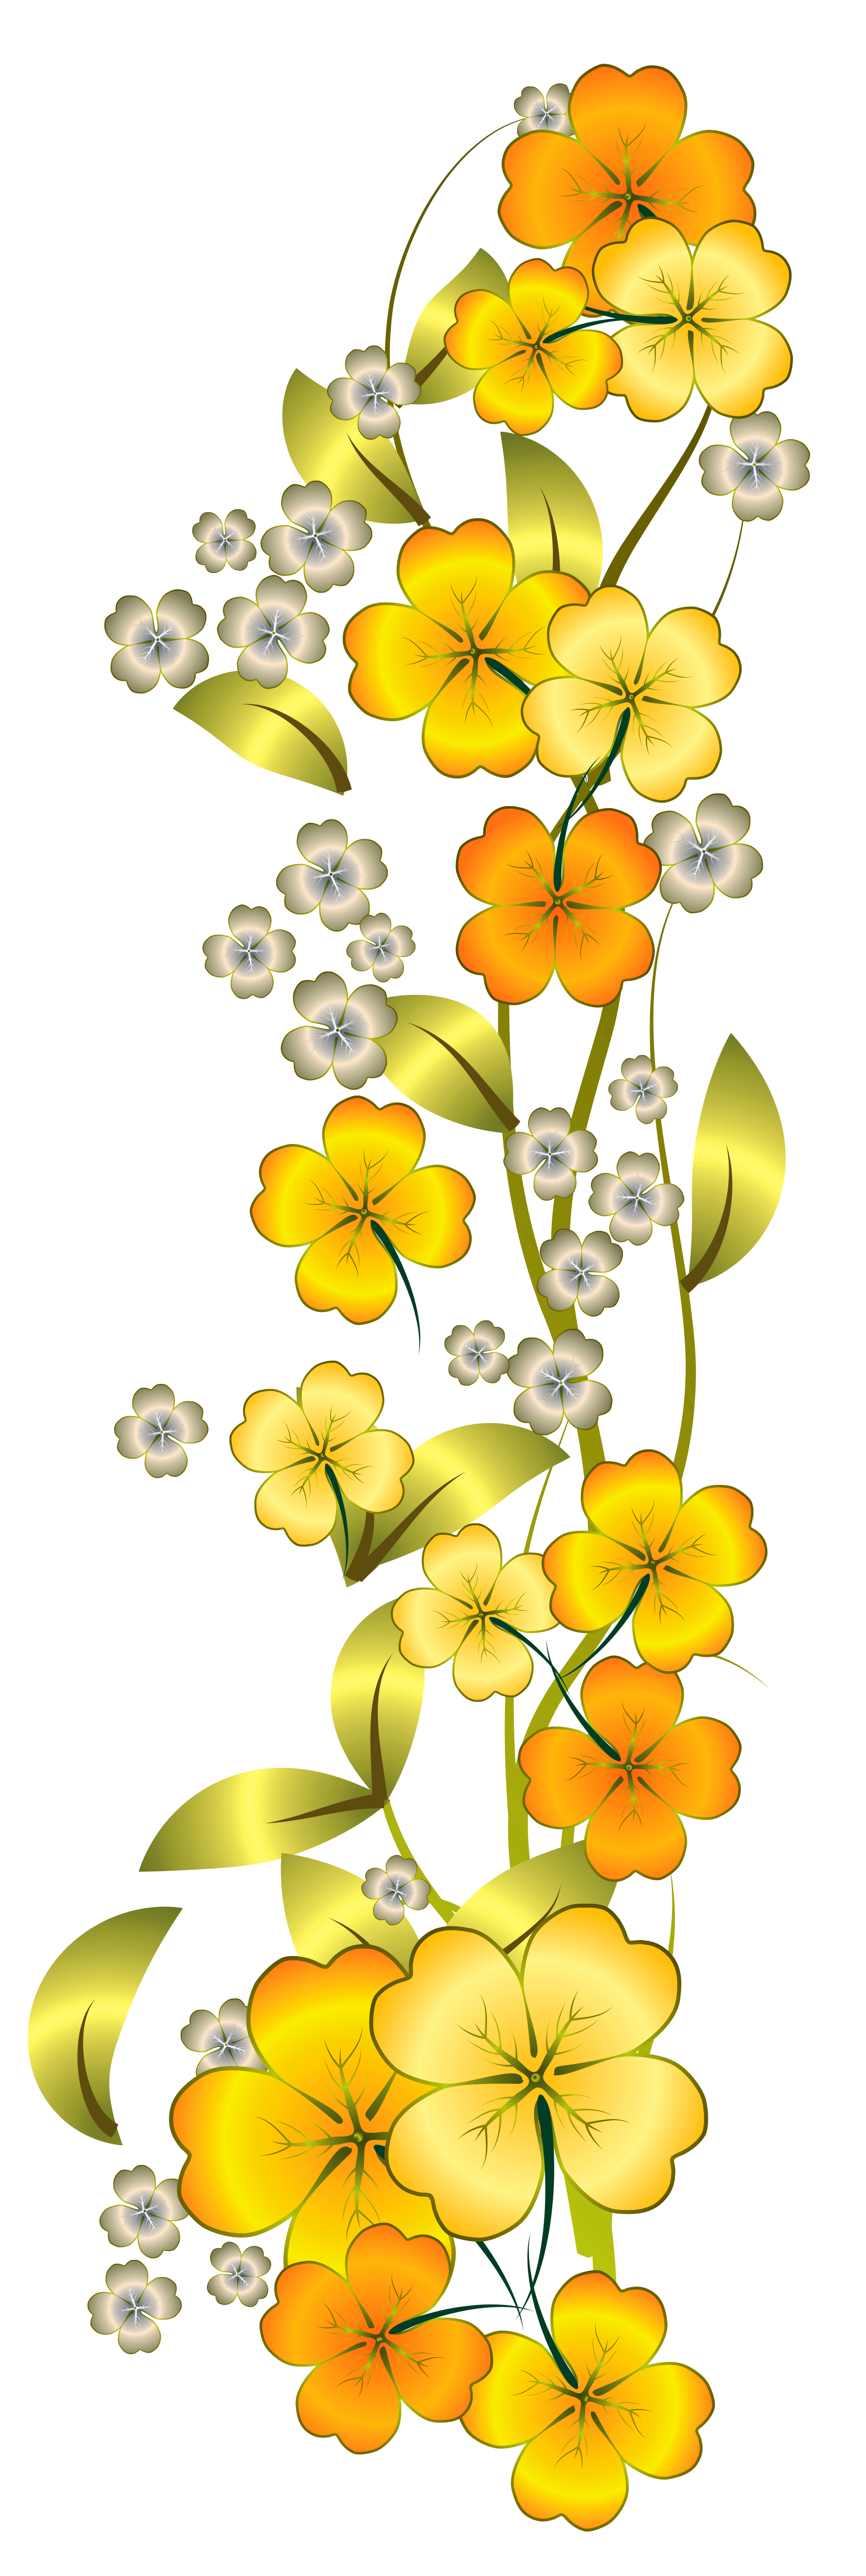 Yellow flowers png. Flower decor clipart gallery